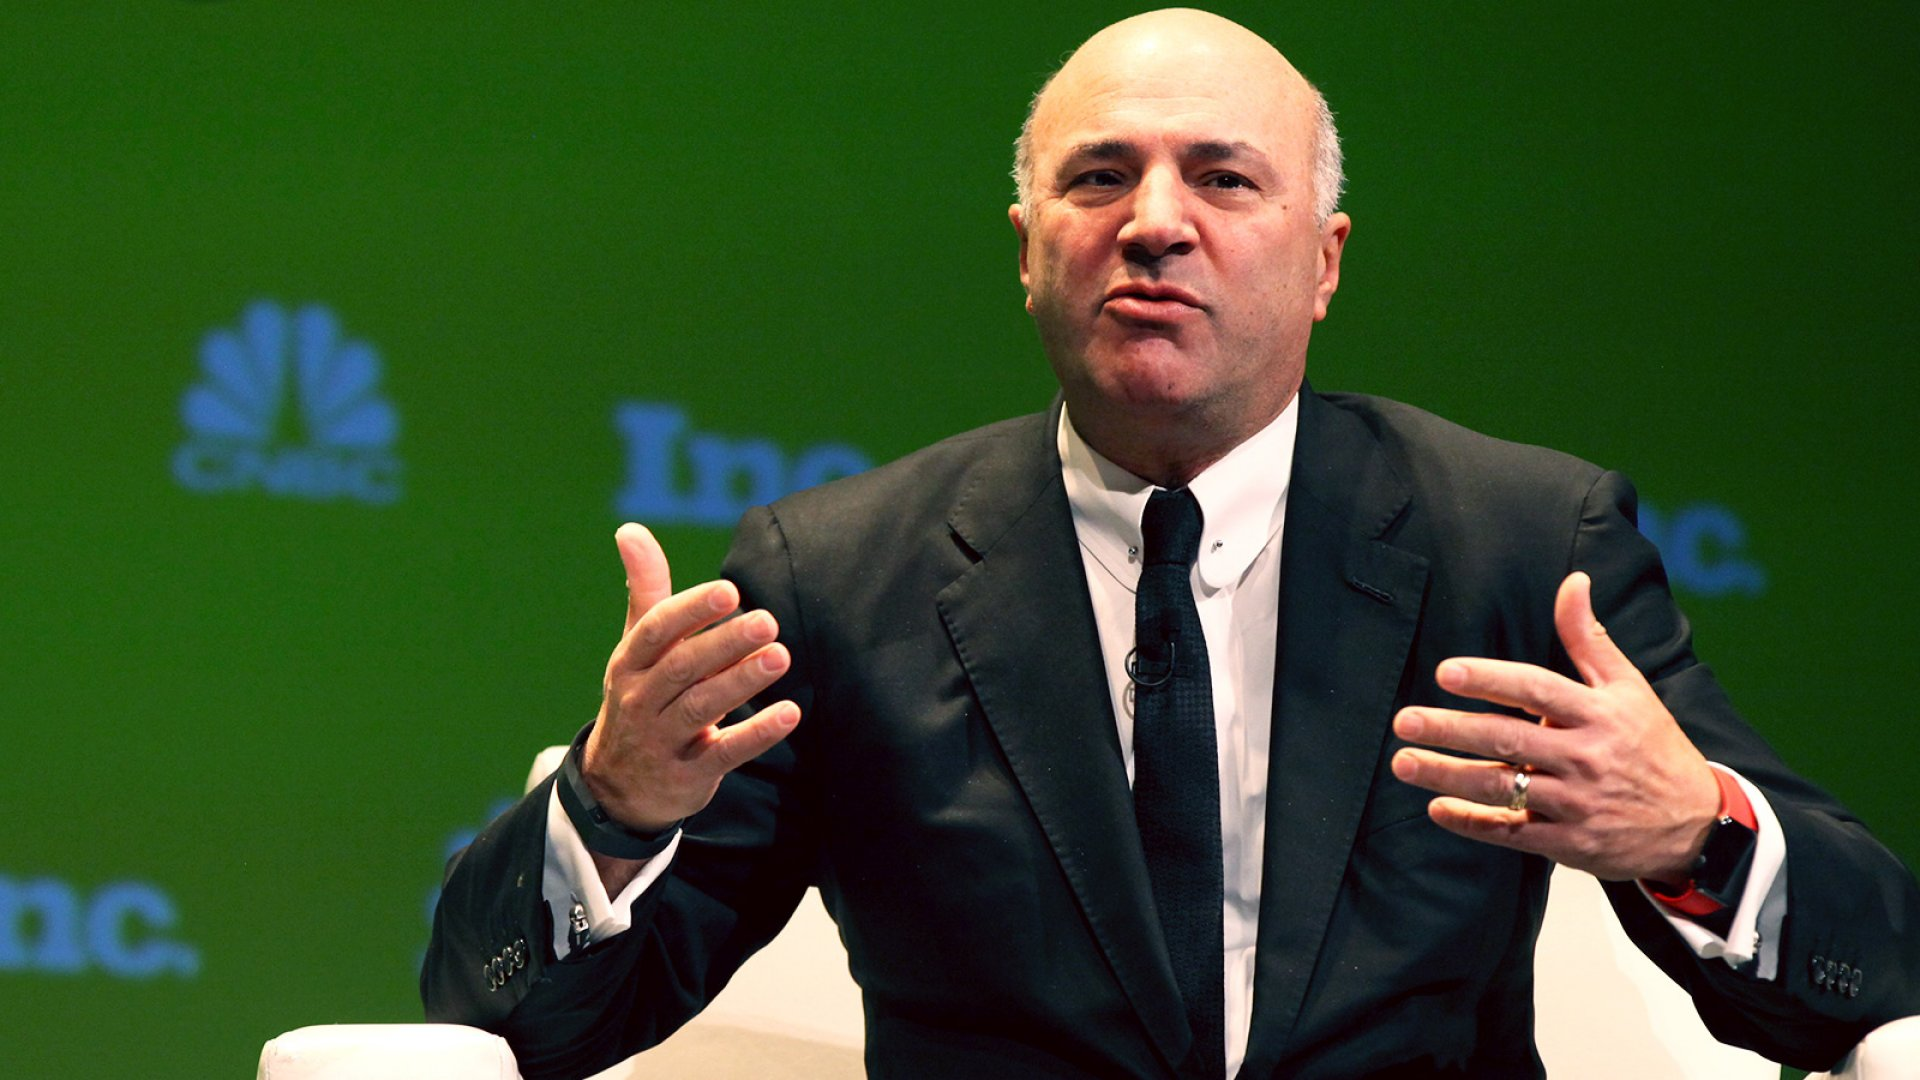 Kevin O'Leary.